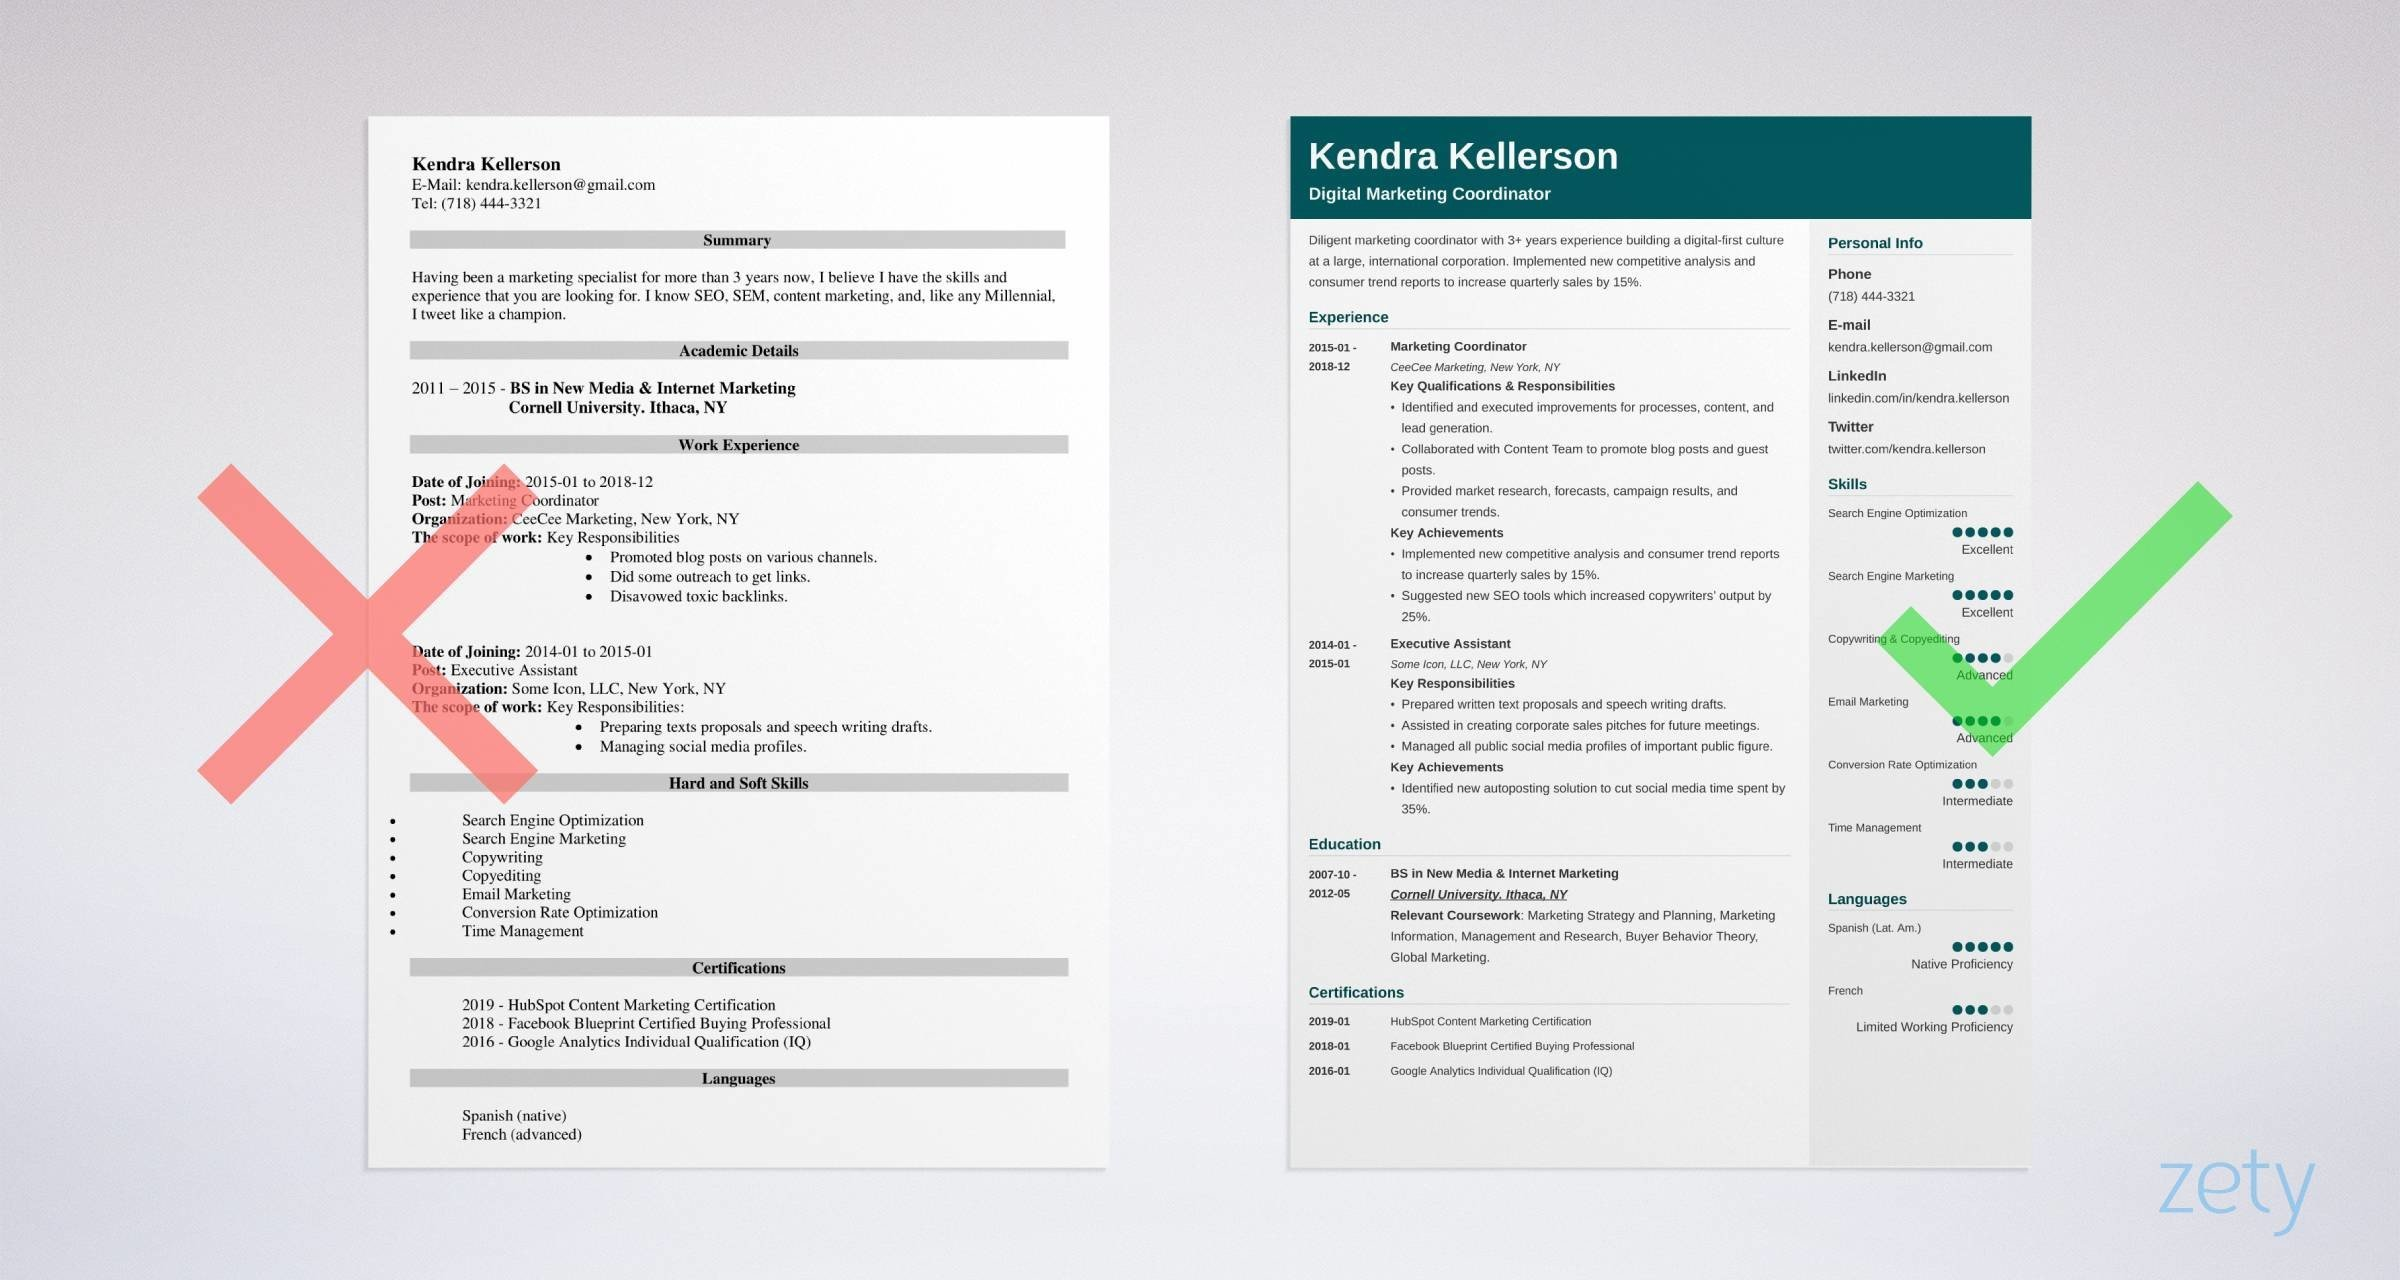 digital marketing resume examples guide best templates template for example professional Resume Resume Template For Digital Marketing